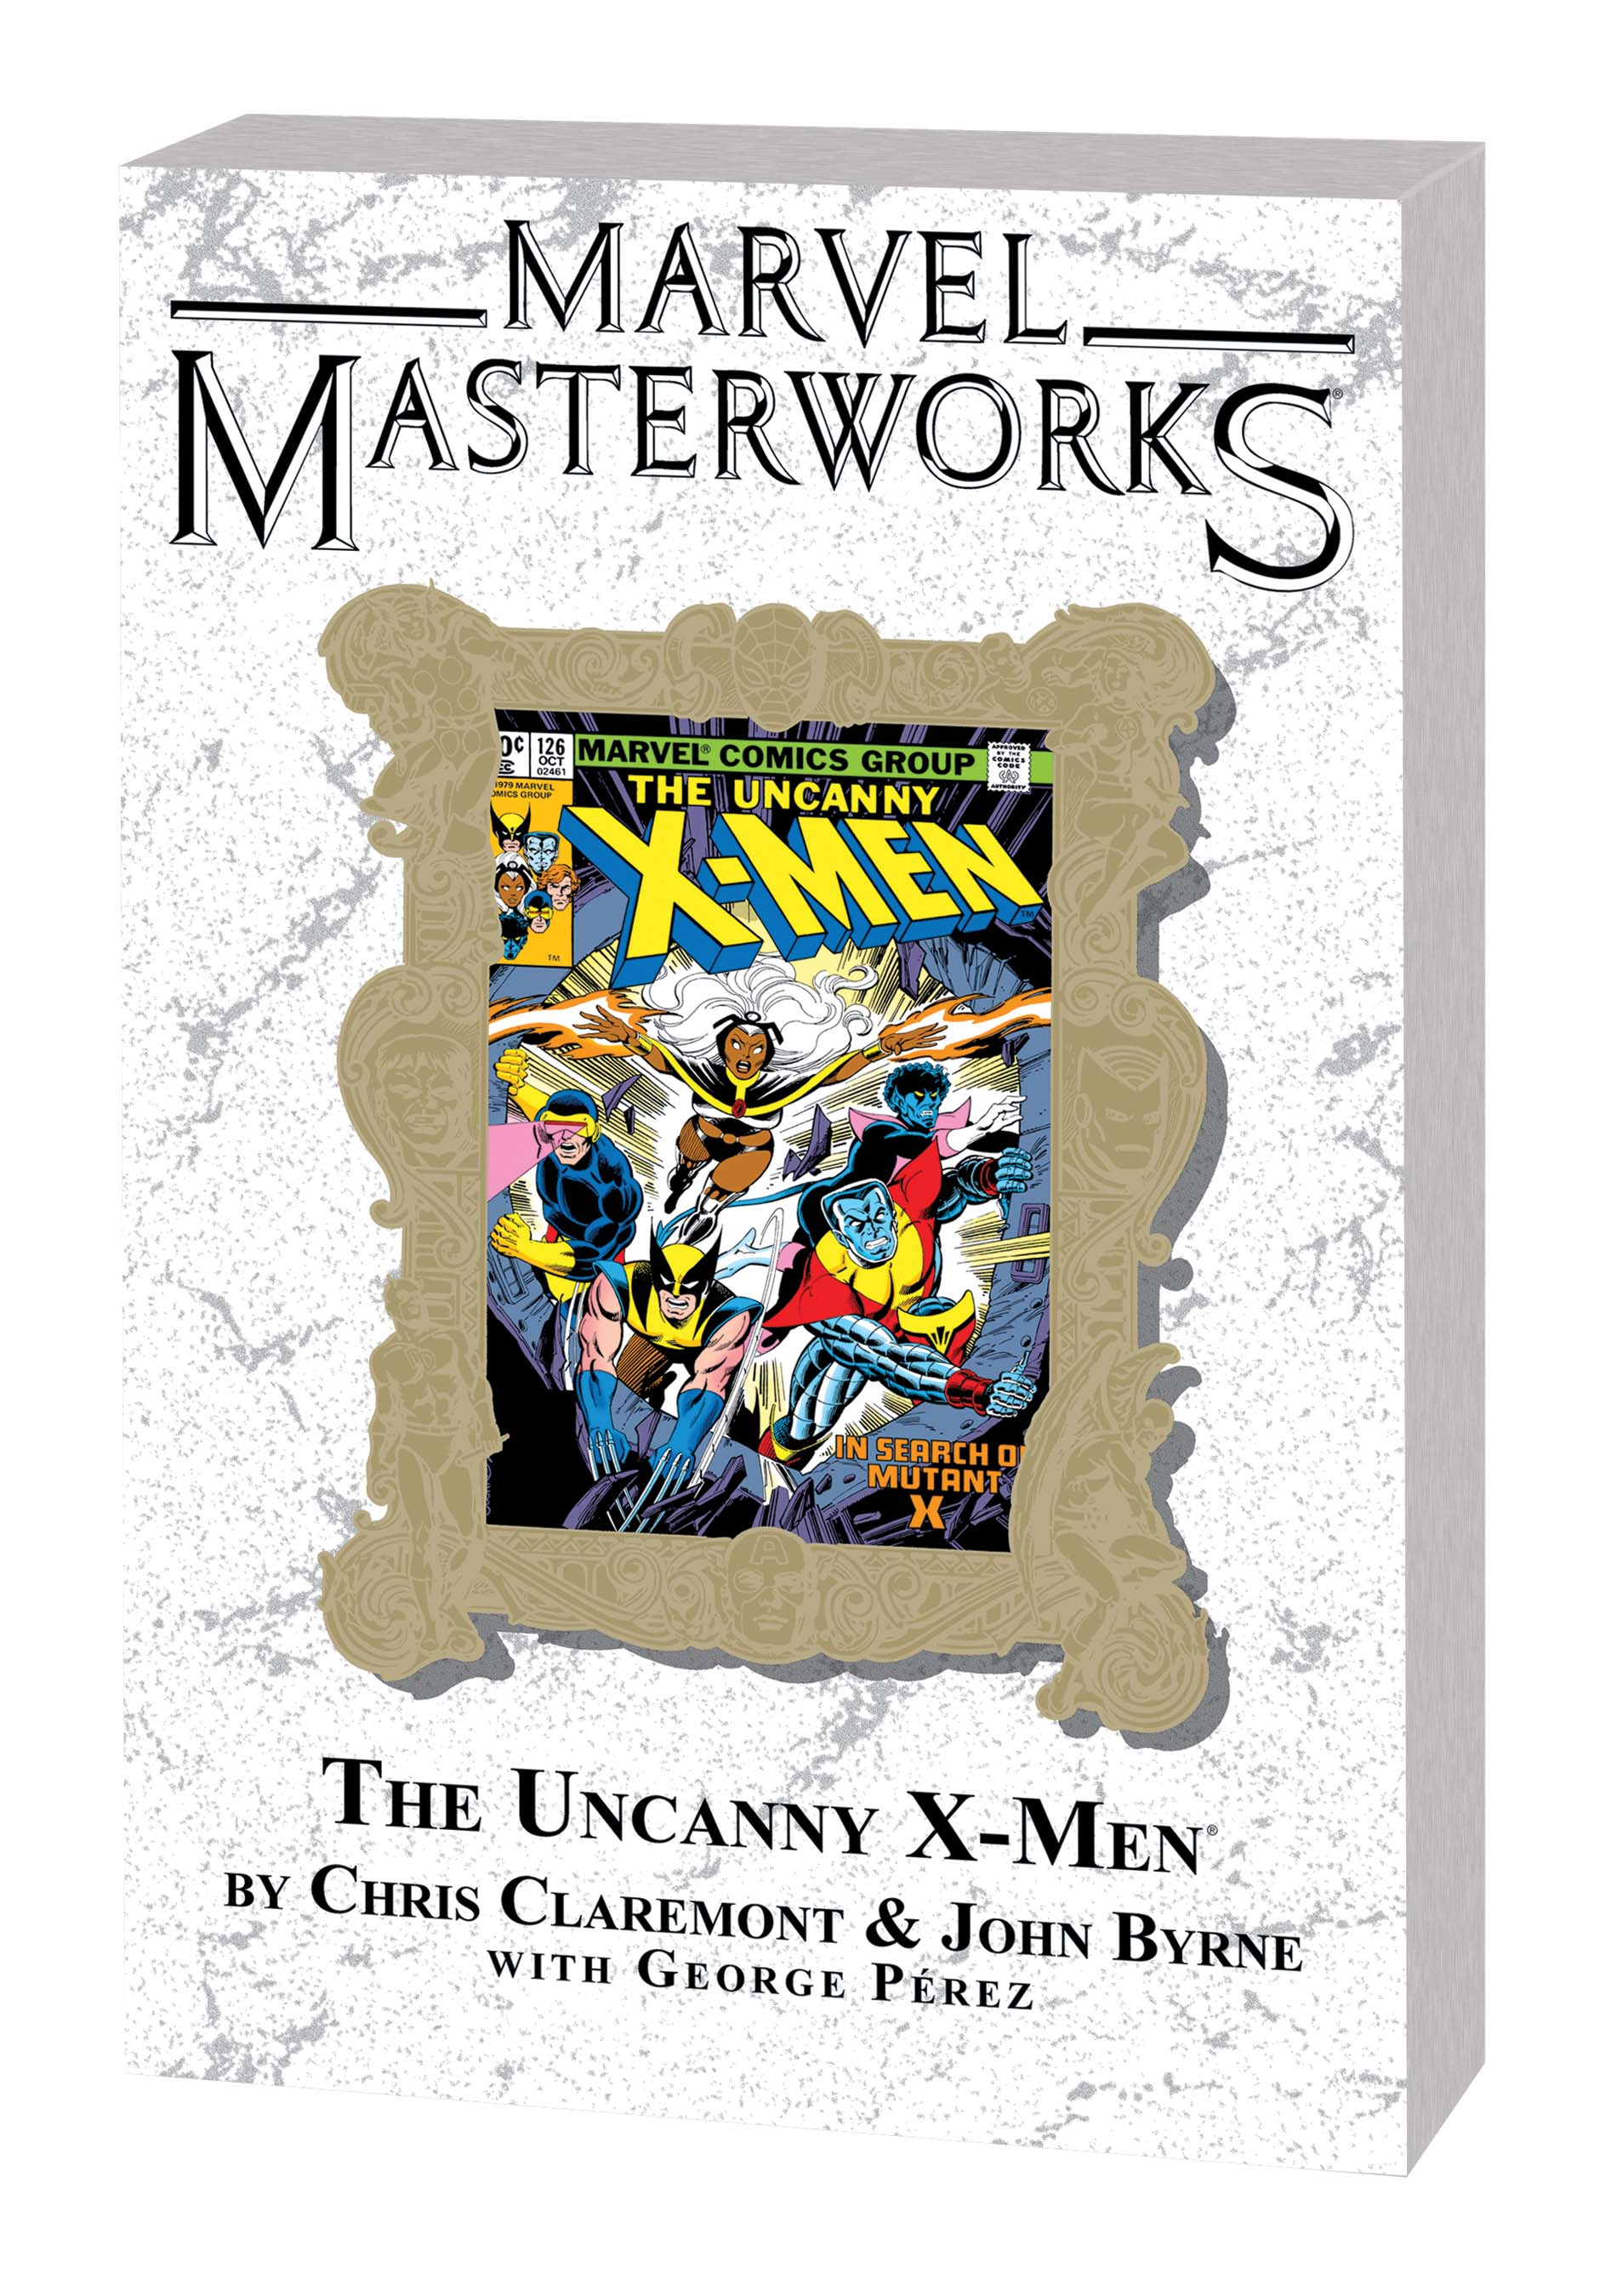 Marvel Masterworks: The Uncanny X-Men Vol. 4 Variant (DM Only) (Trade Paperback)